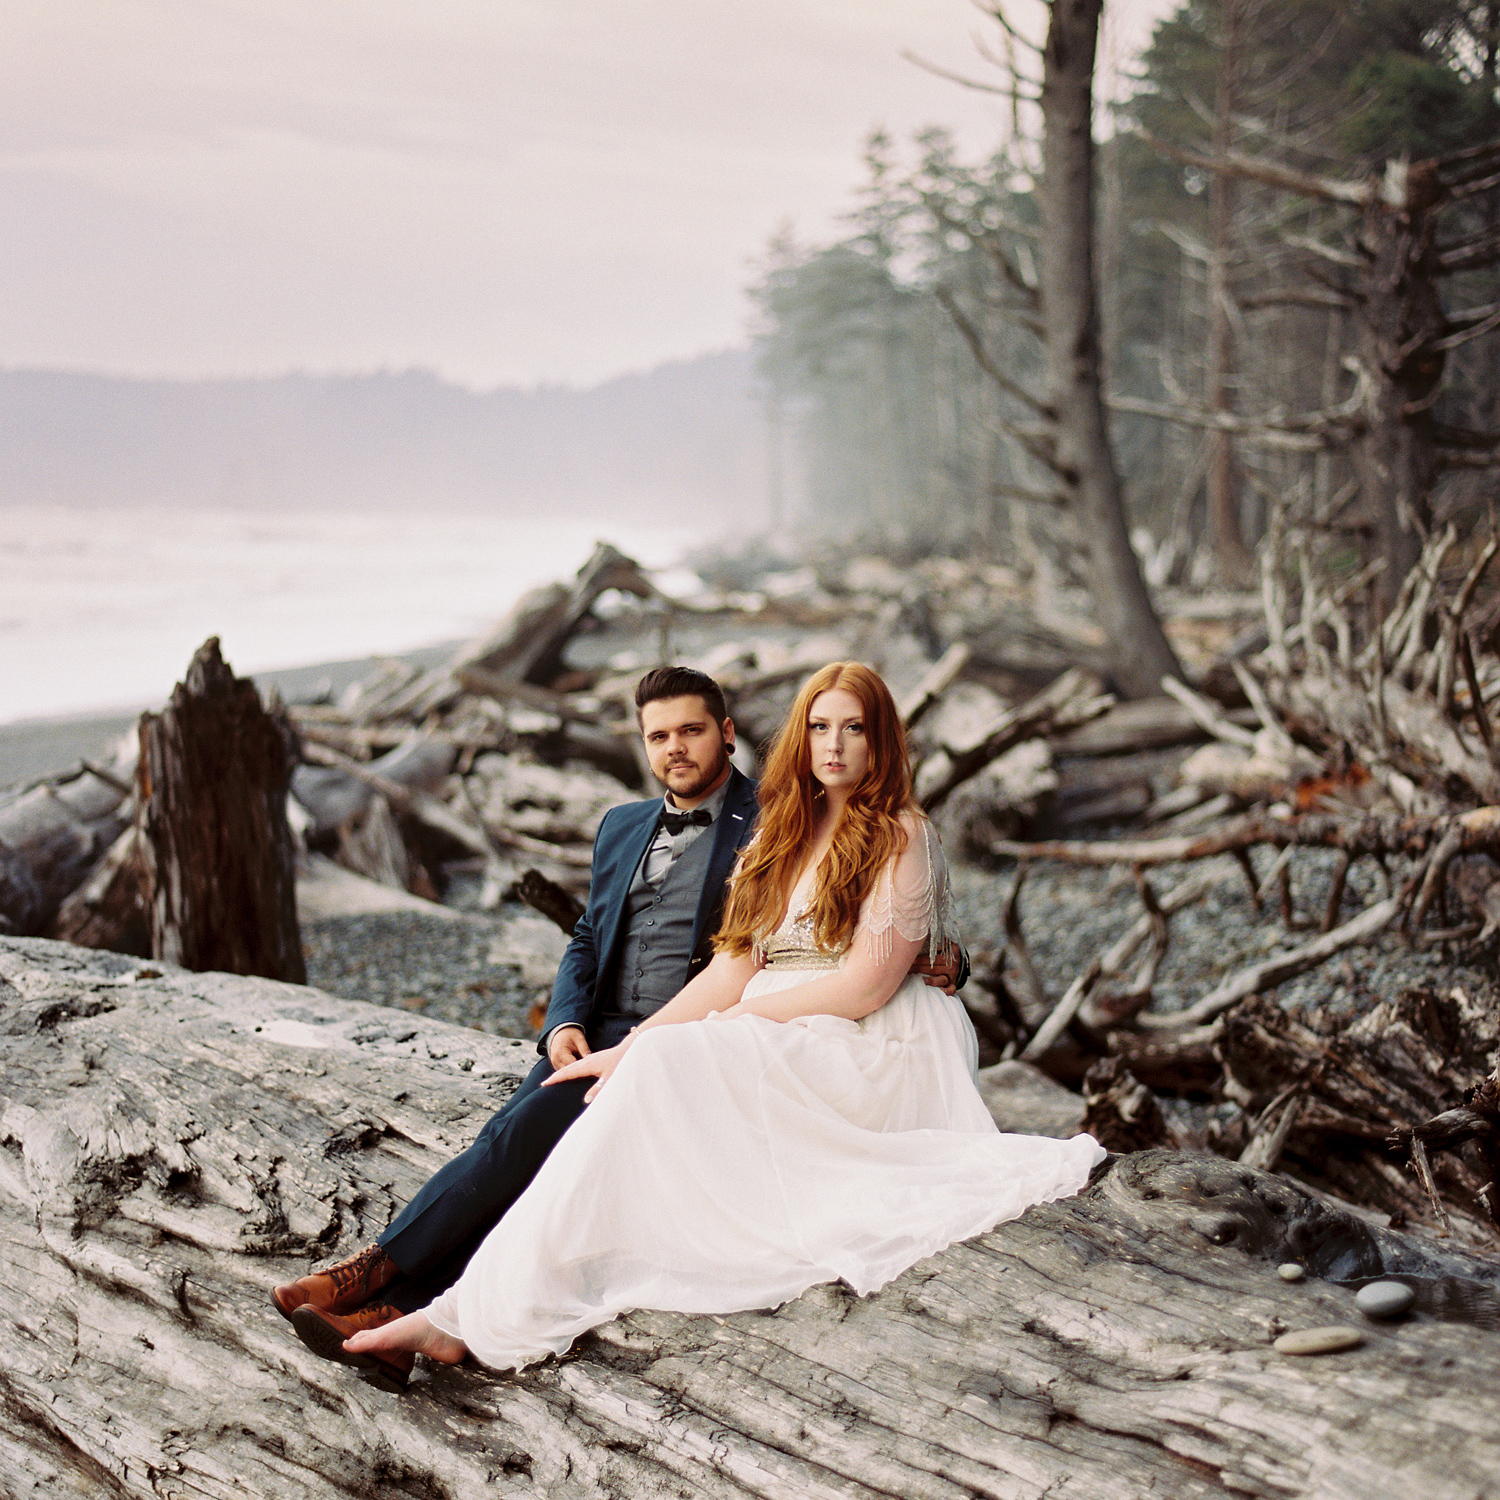 ryan-flynn-photography-best-wedding-photos-2014-0005.JPG